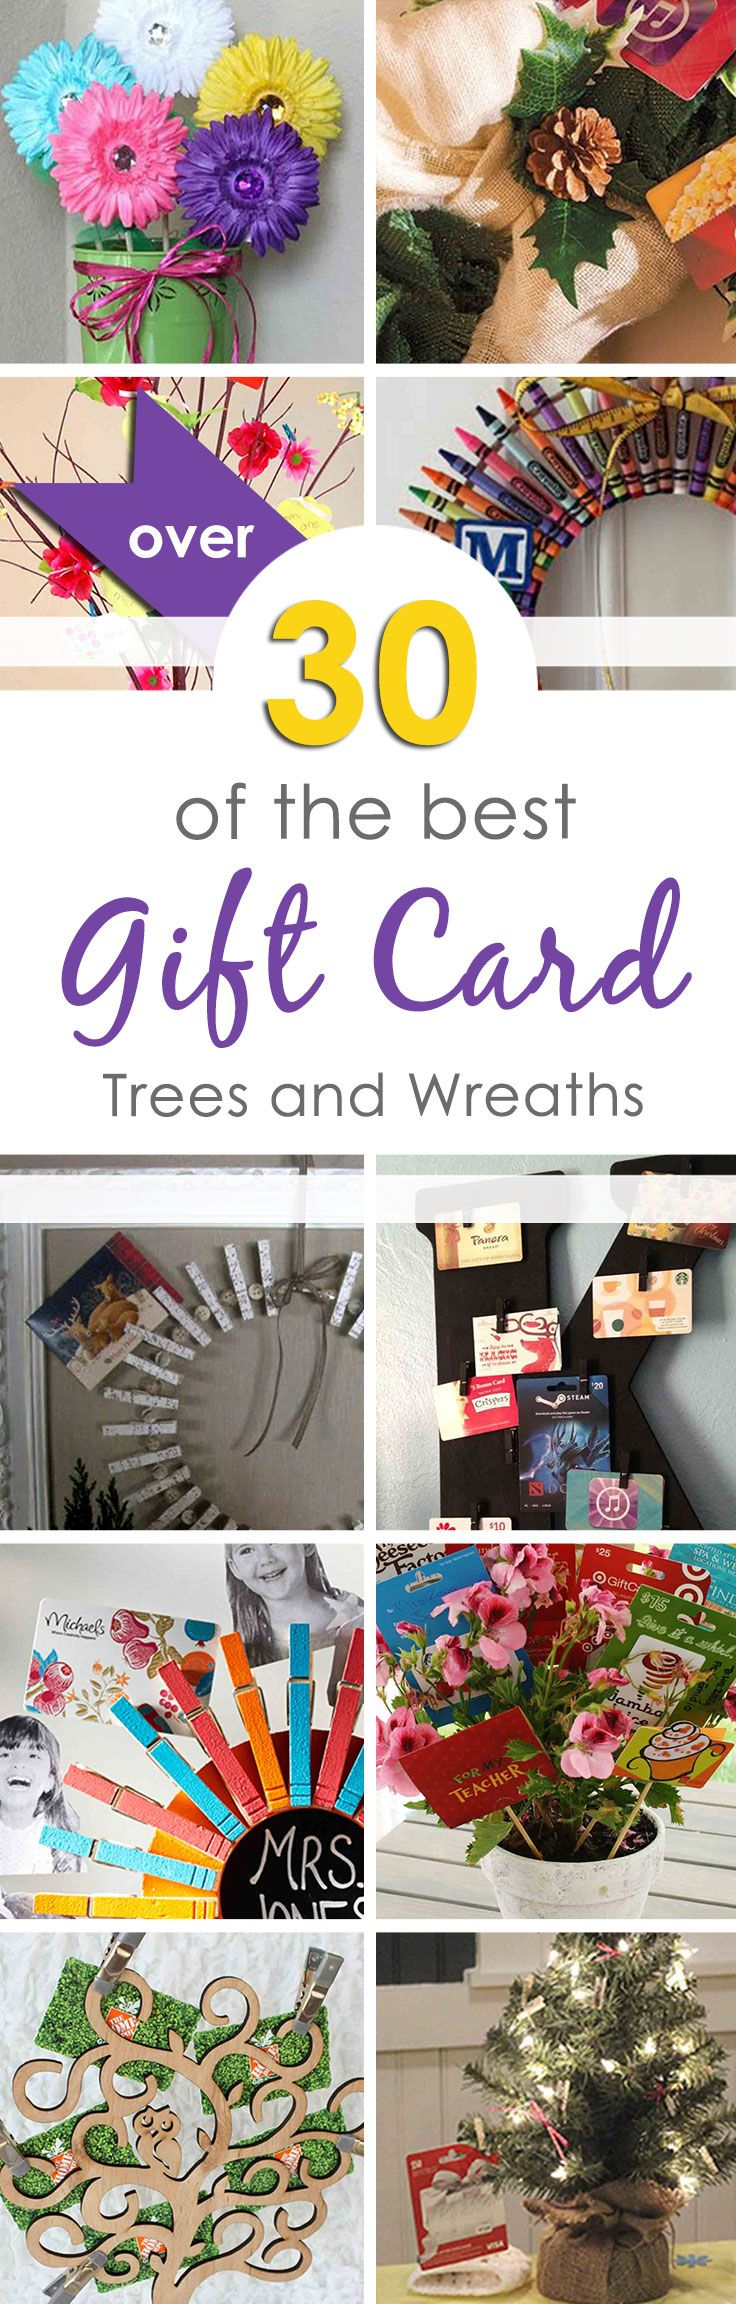 Good Wedding Gift Card : ... wedding best gift cards best gifts fun gifts holiday gifts card